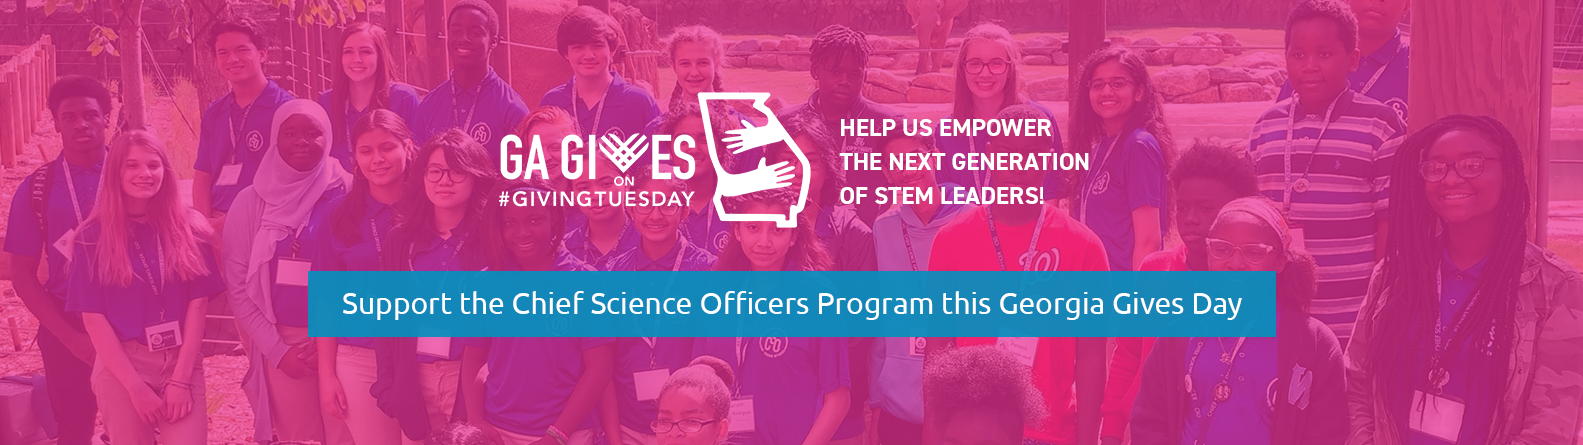 Support the Chief Science Officers Program this Georgia GIves Day.